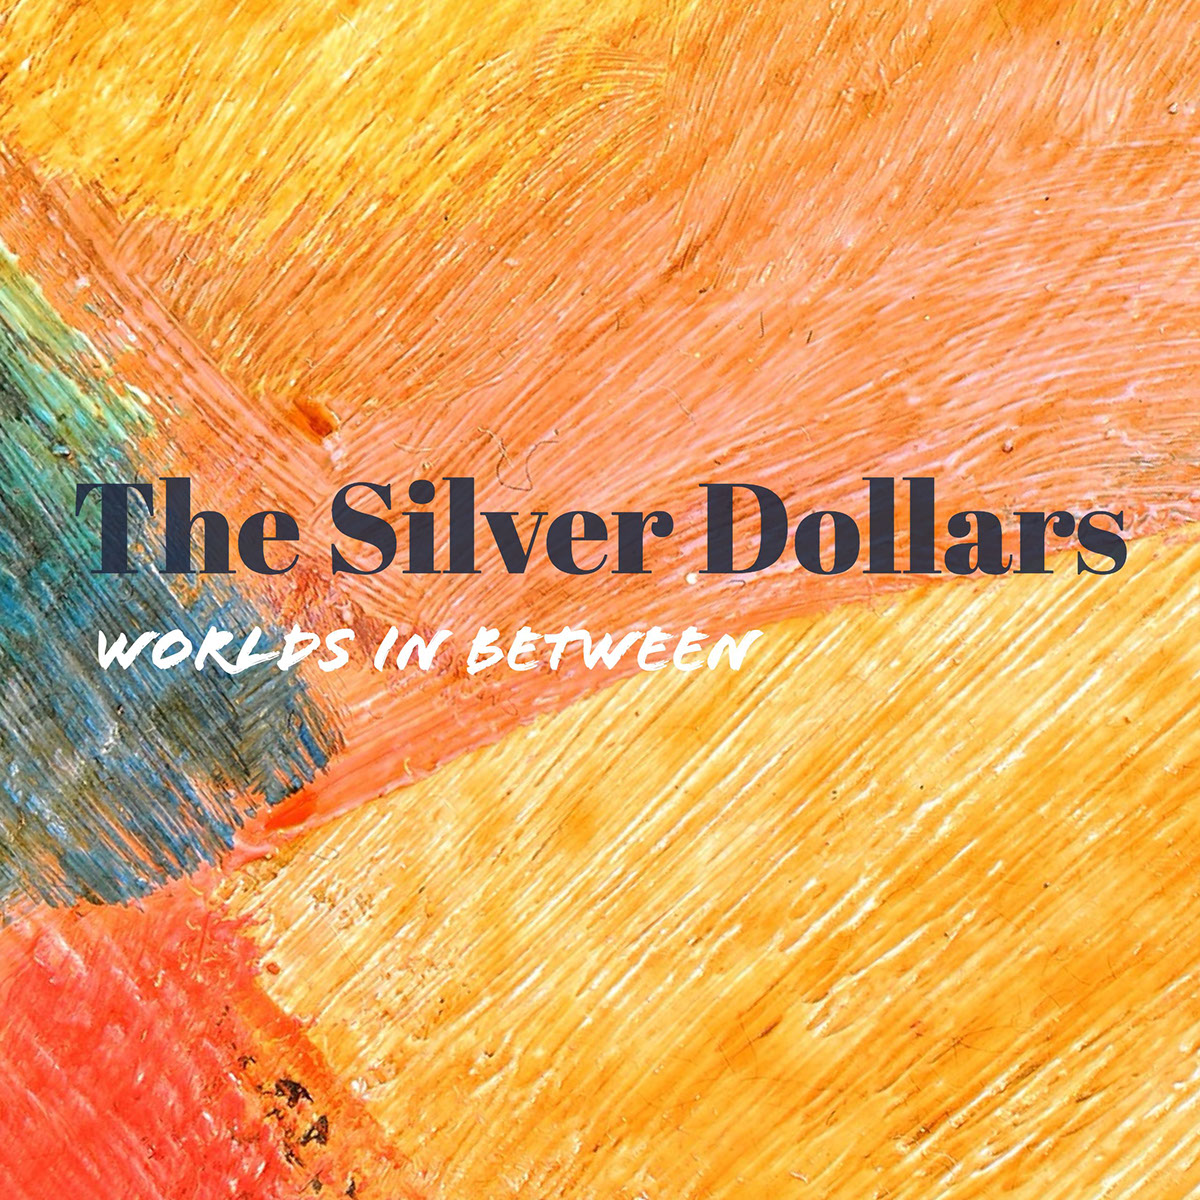 The Silver Dollars